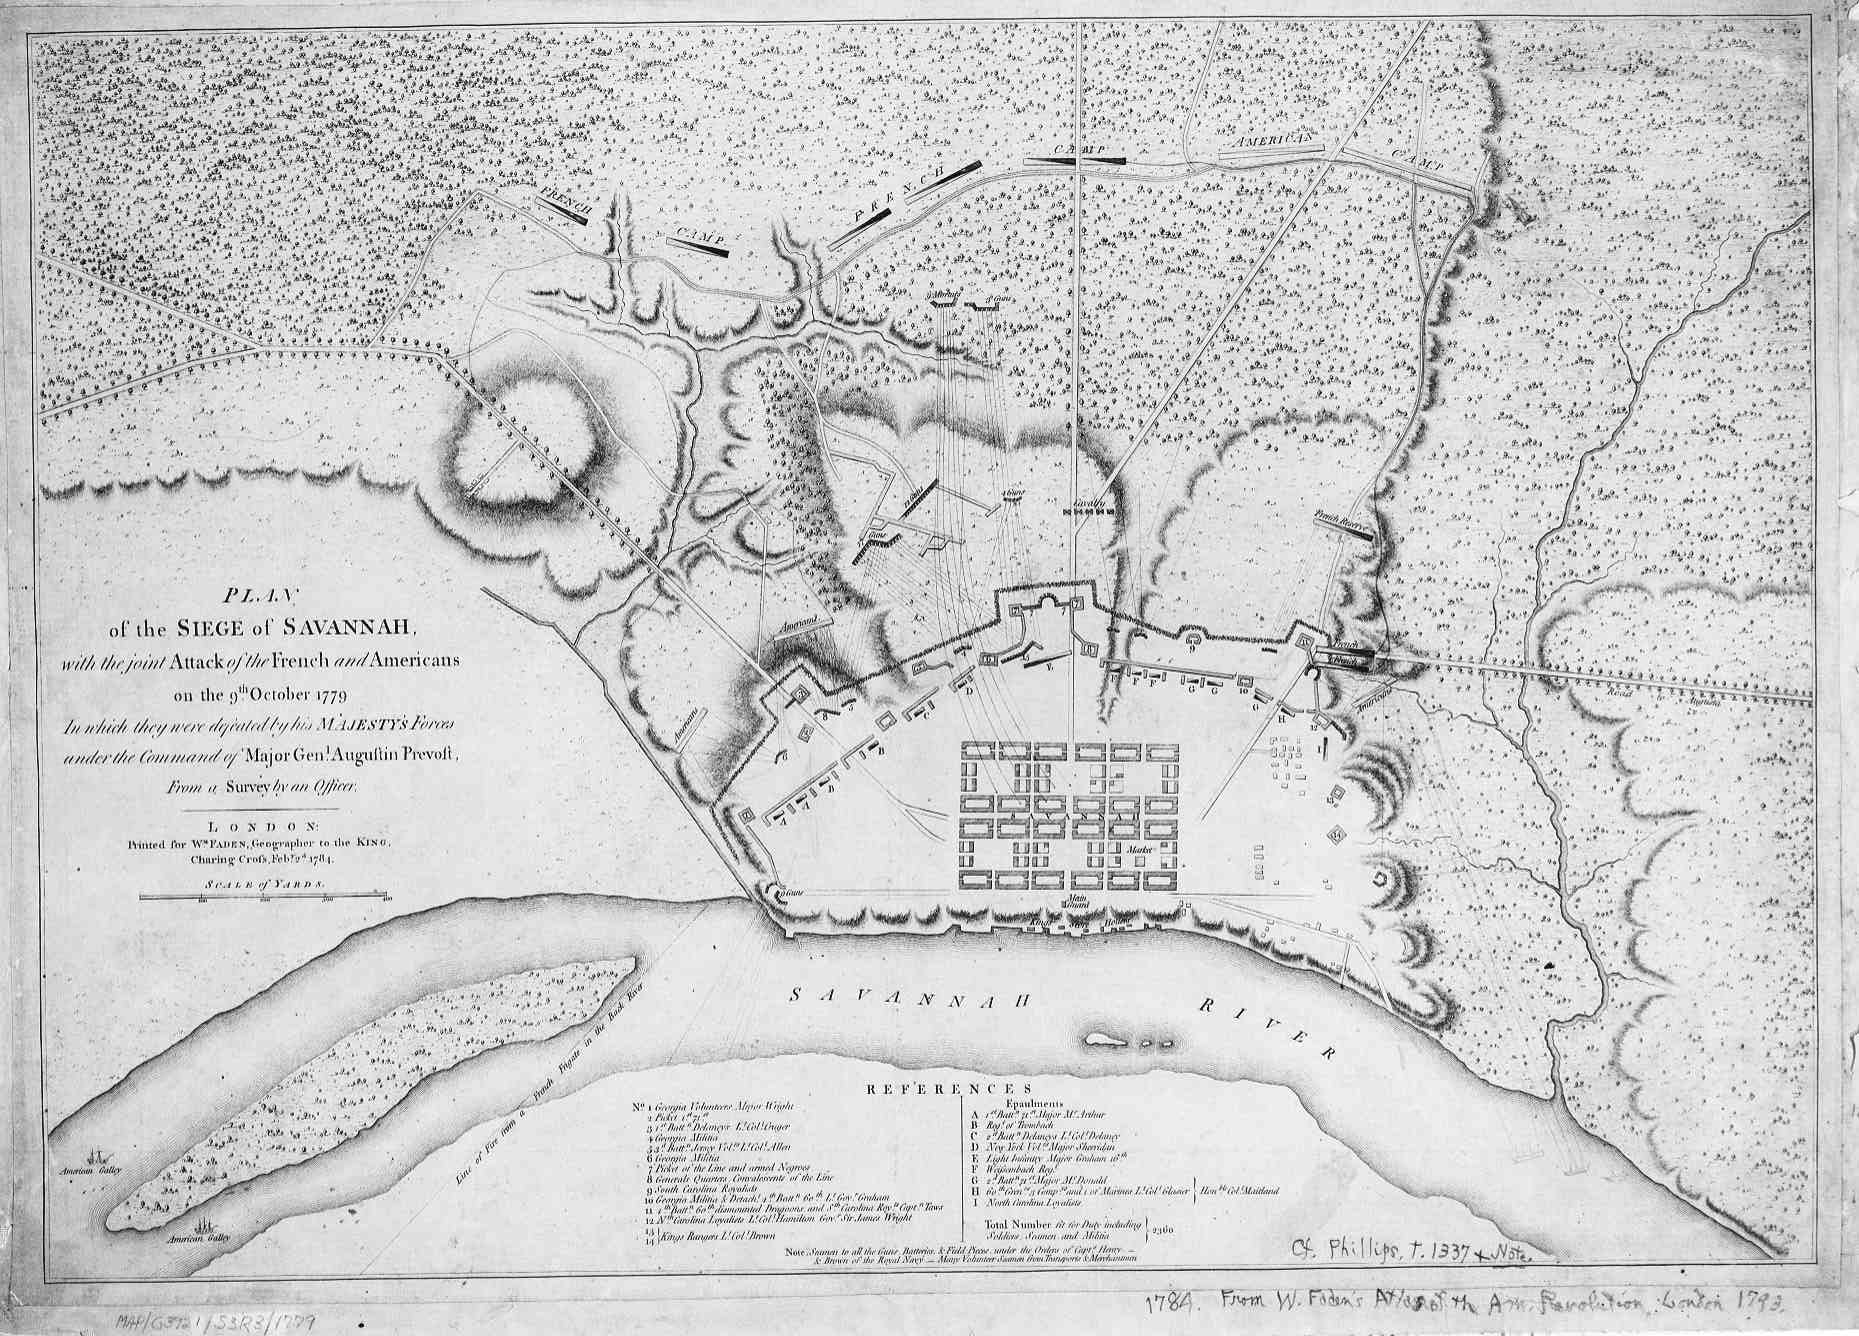 Map 1779 P4 Plan Of The Siege Of Savannah With The Joint Attack Of The French And Americans On The 9th October 1779